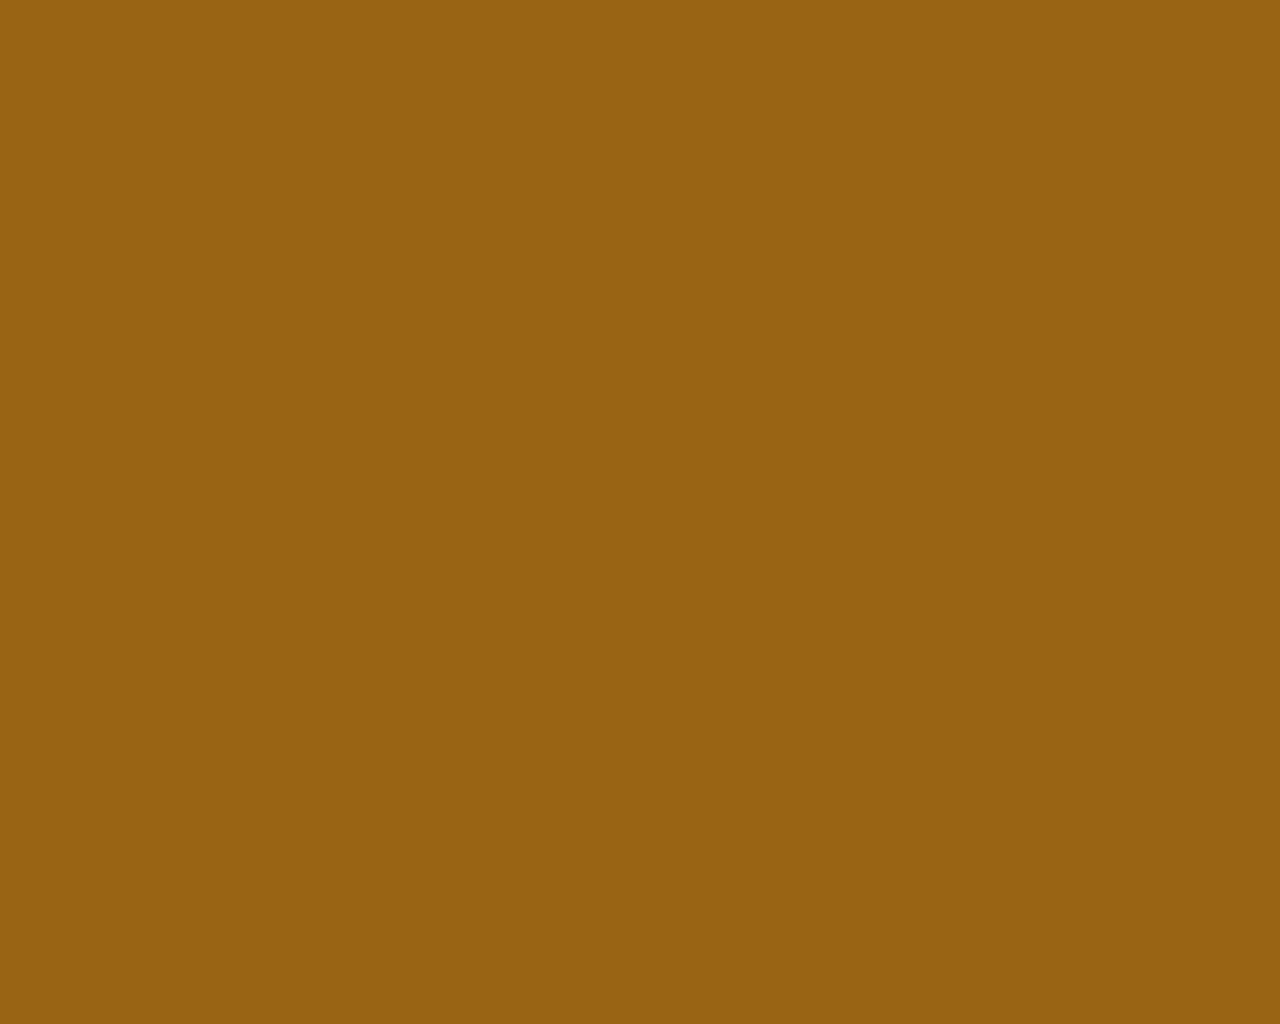 1280x1024 Golden Brown Solid Color Background